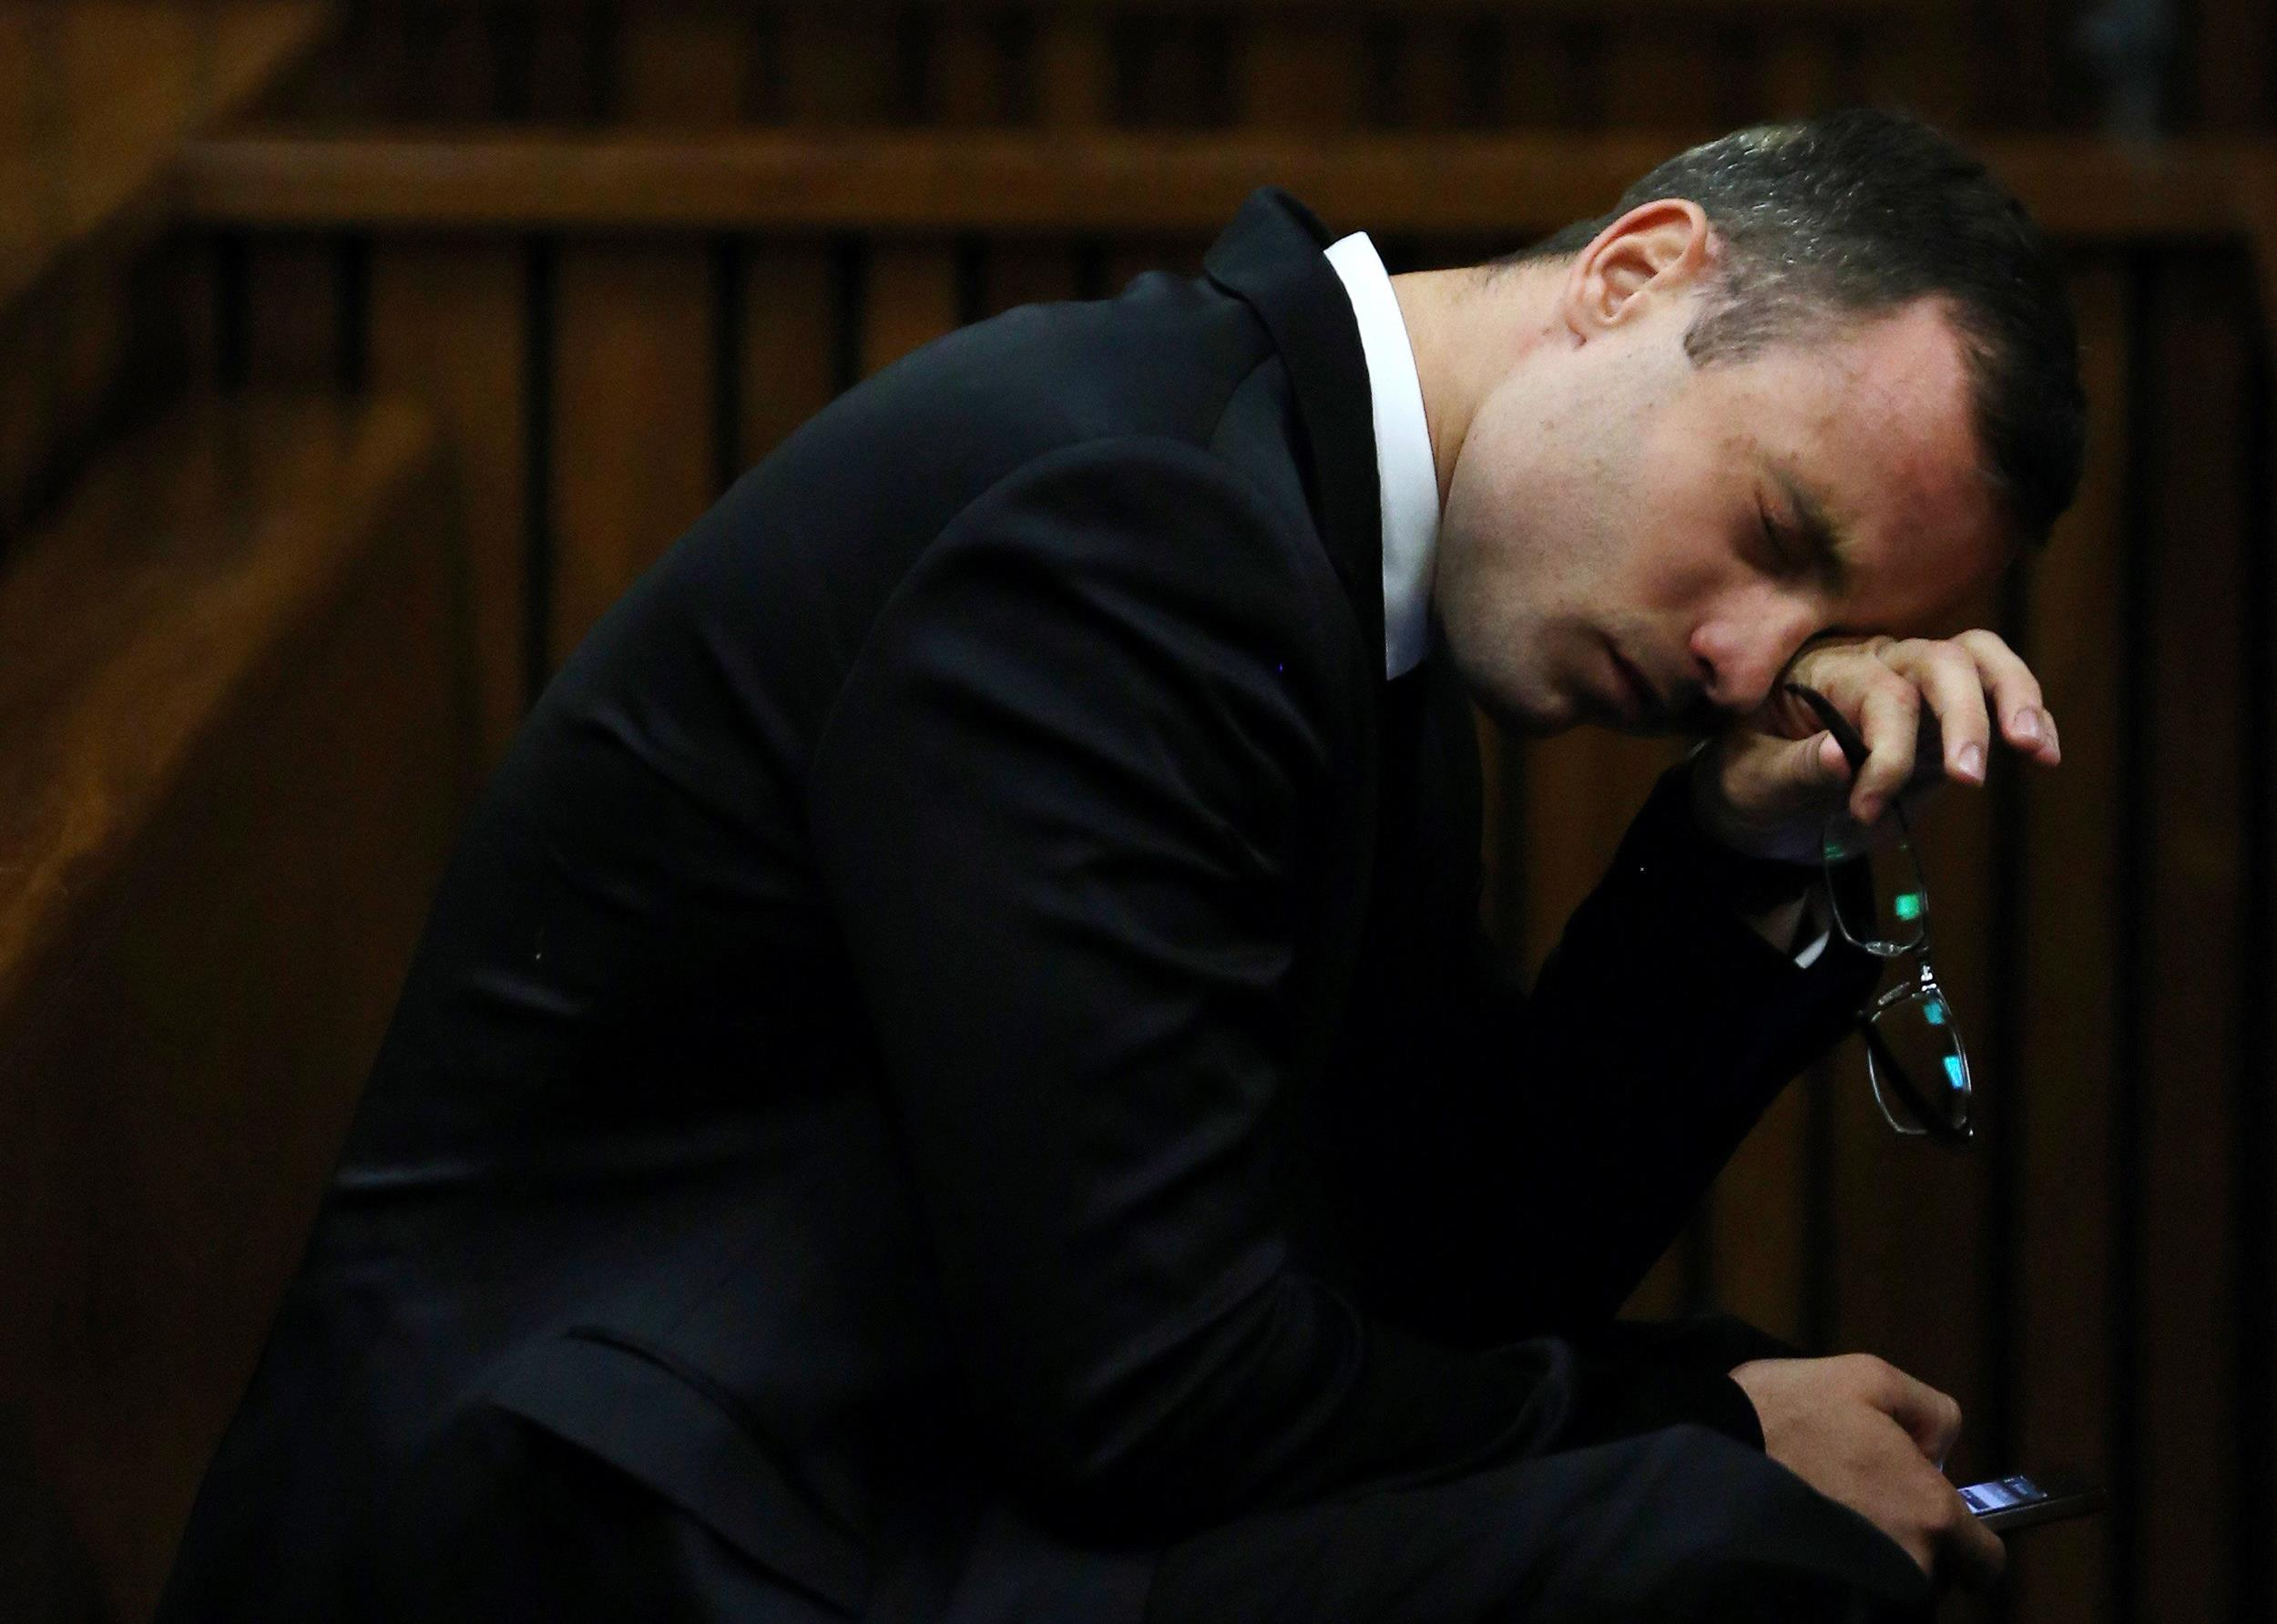 Image: Oscar Pistorius attends his trial at the high court in Pretoria